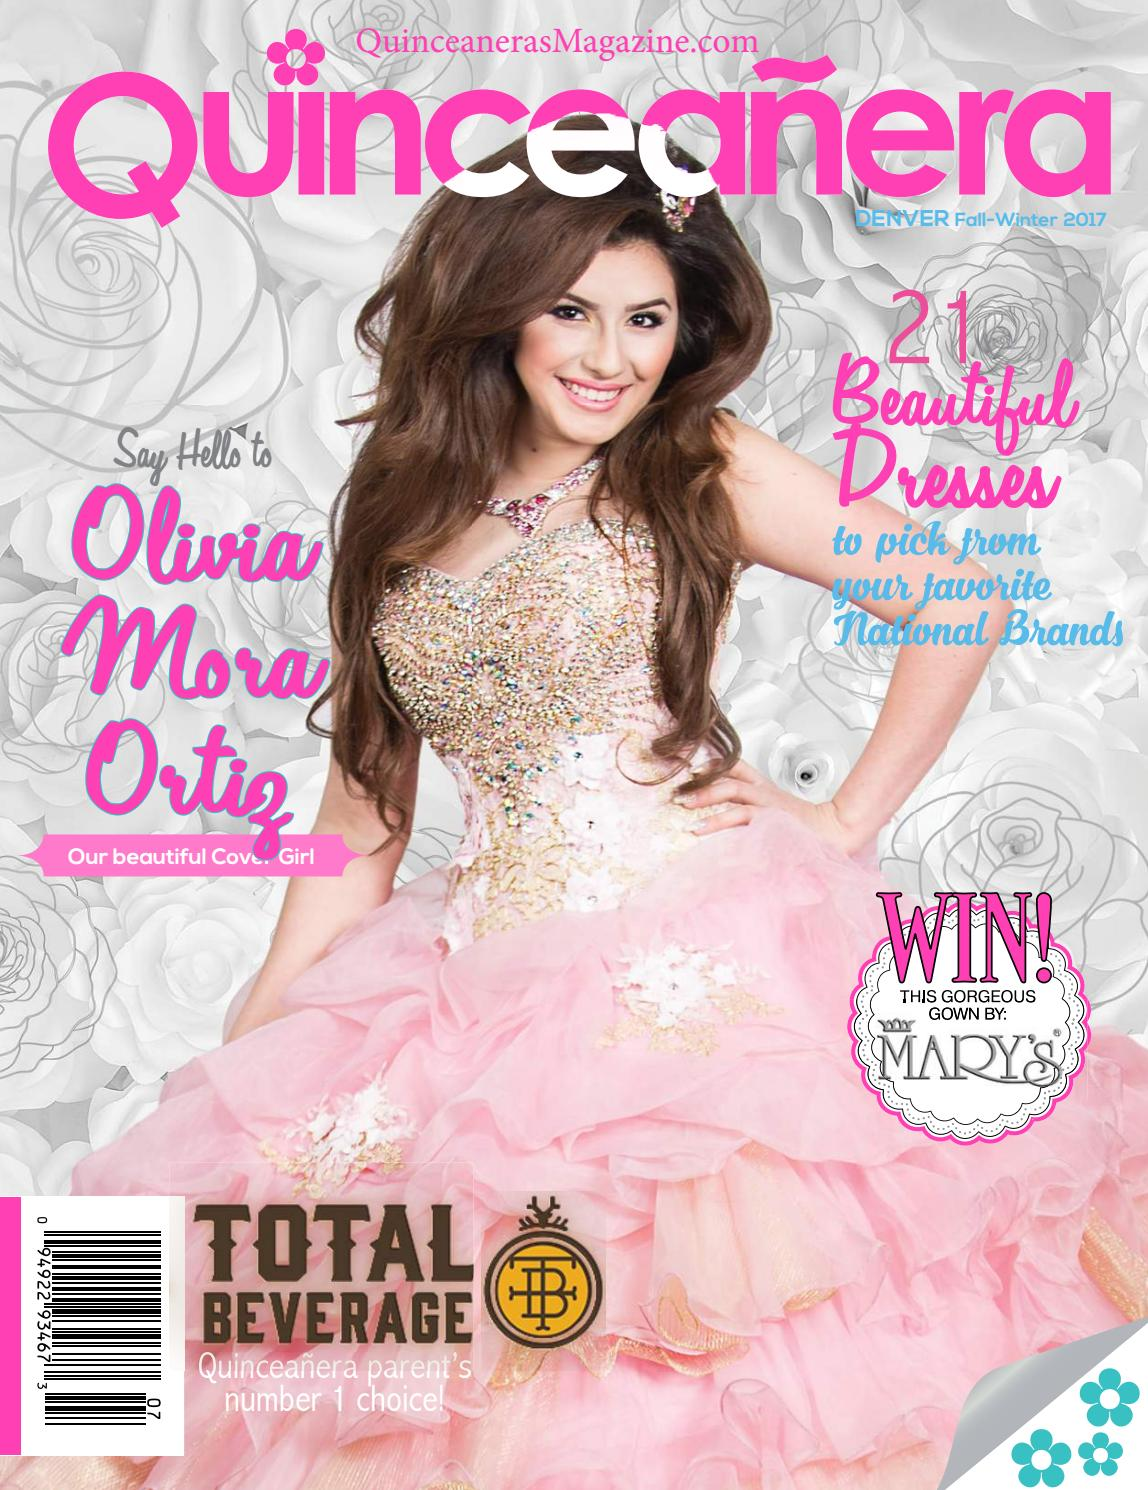 Quinceaneras Magazine Denver Fall Winter 2017 by QUINCEANERAS ...